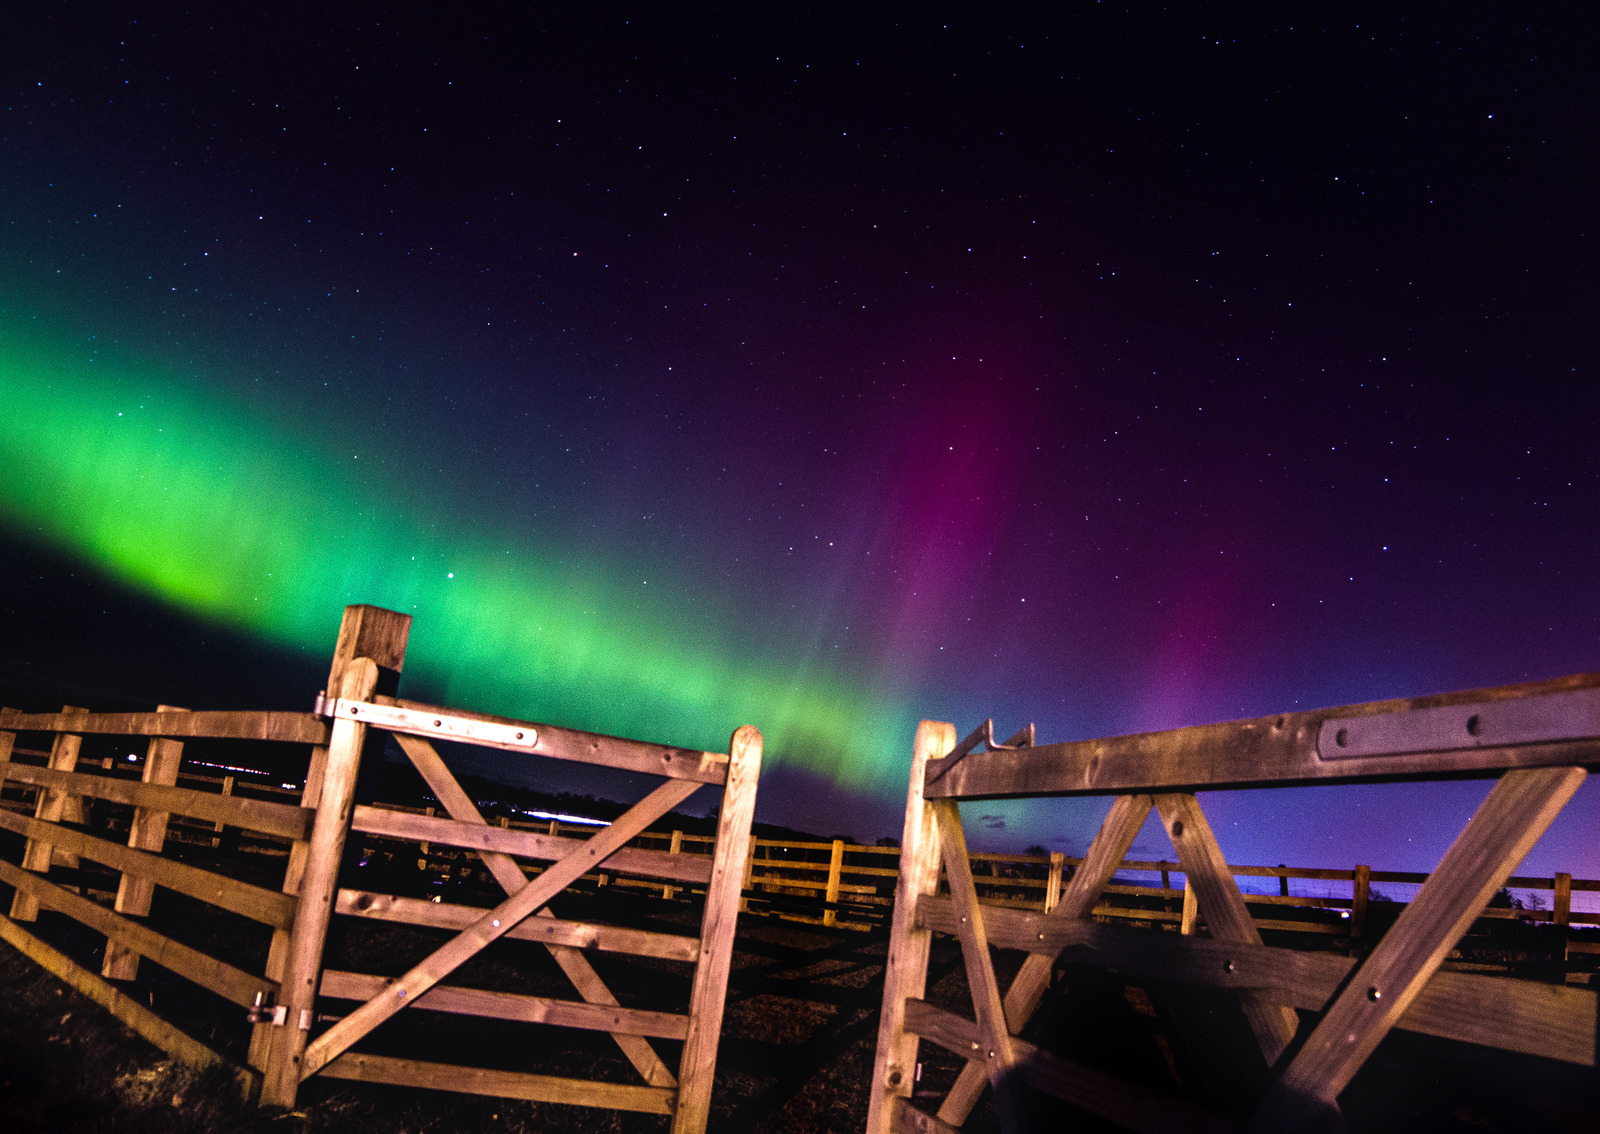 Aurora over Perthshire